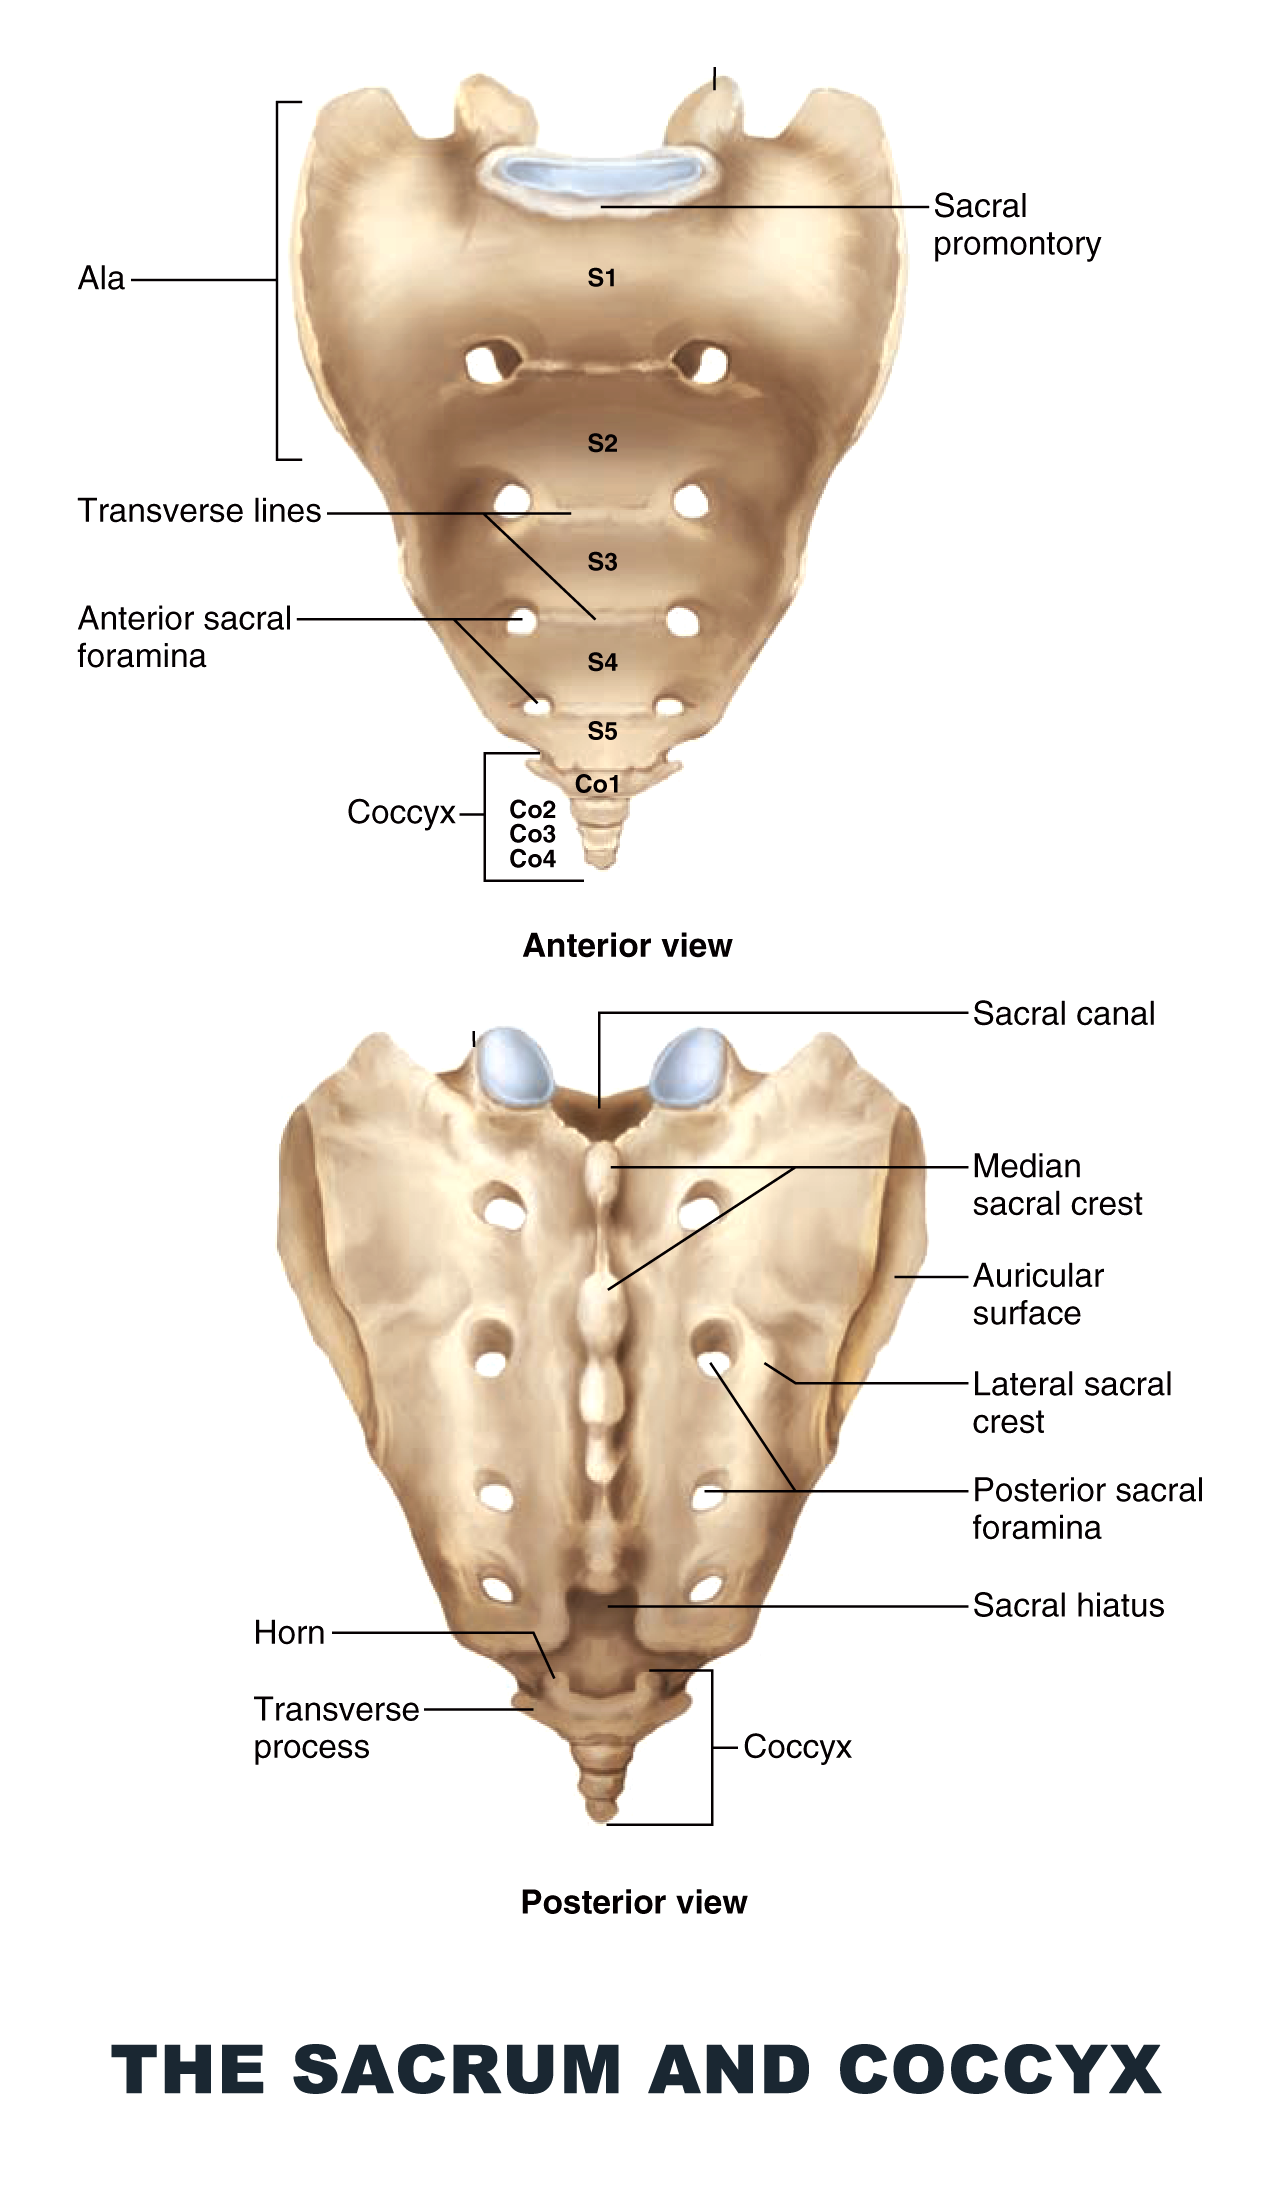 The Sacrum and Coccyx - #anatomy images illustrations #anatomy ...